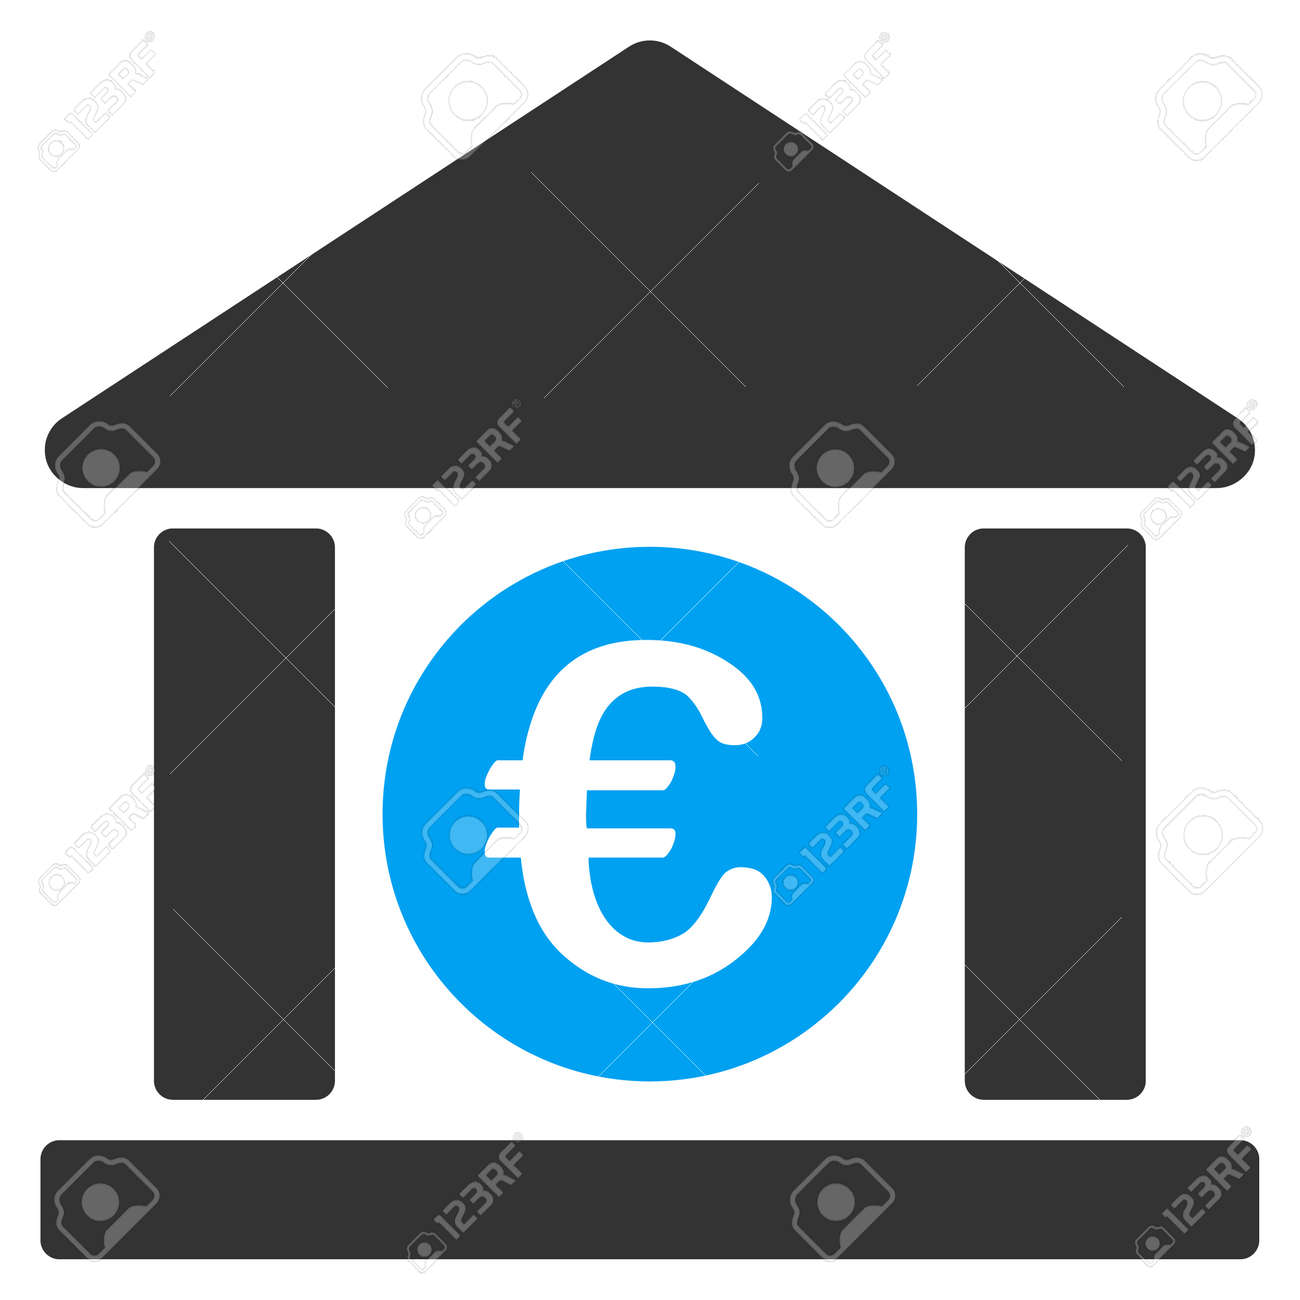 Euro bank building icon vector style is bicolor flat iconic euro bank building icon vector style is bicolor flat iconic symbol blue and gray biocorpaavc Image collections